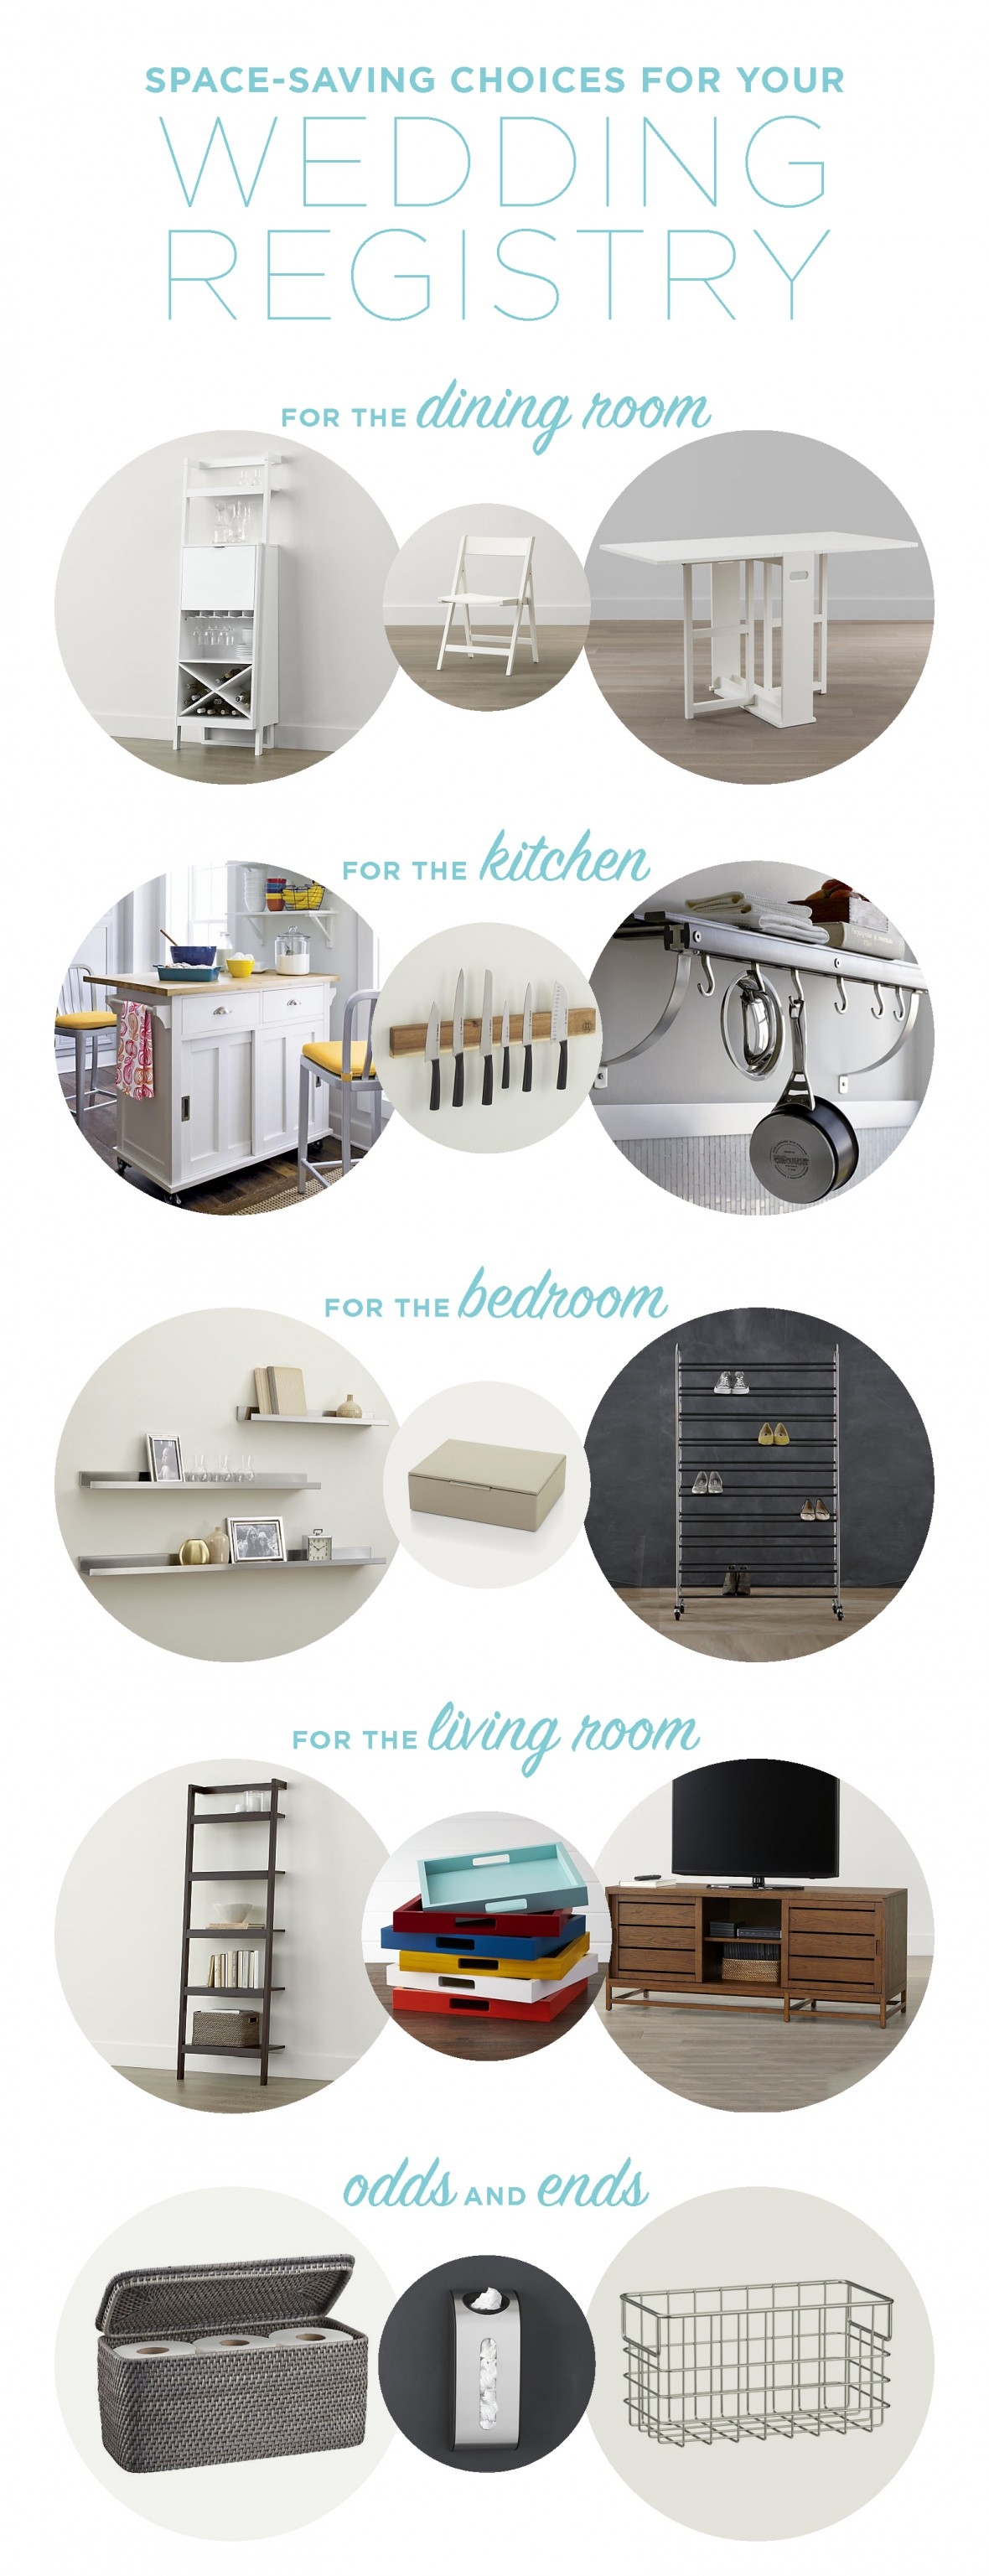 These items from Crate and Barrel are perfect for small spaces! We love the space-saving solutions -- perfect for your wedding registry!